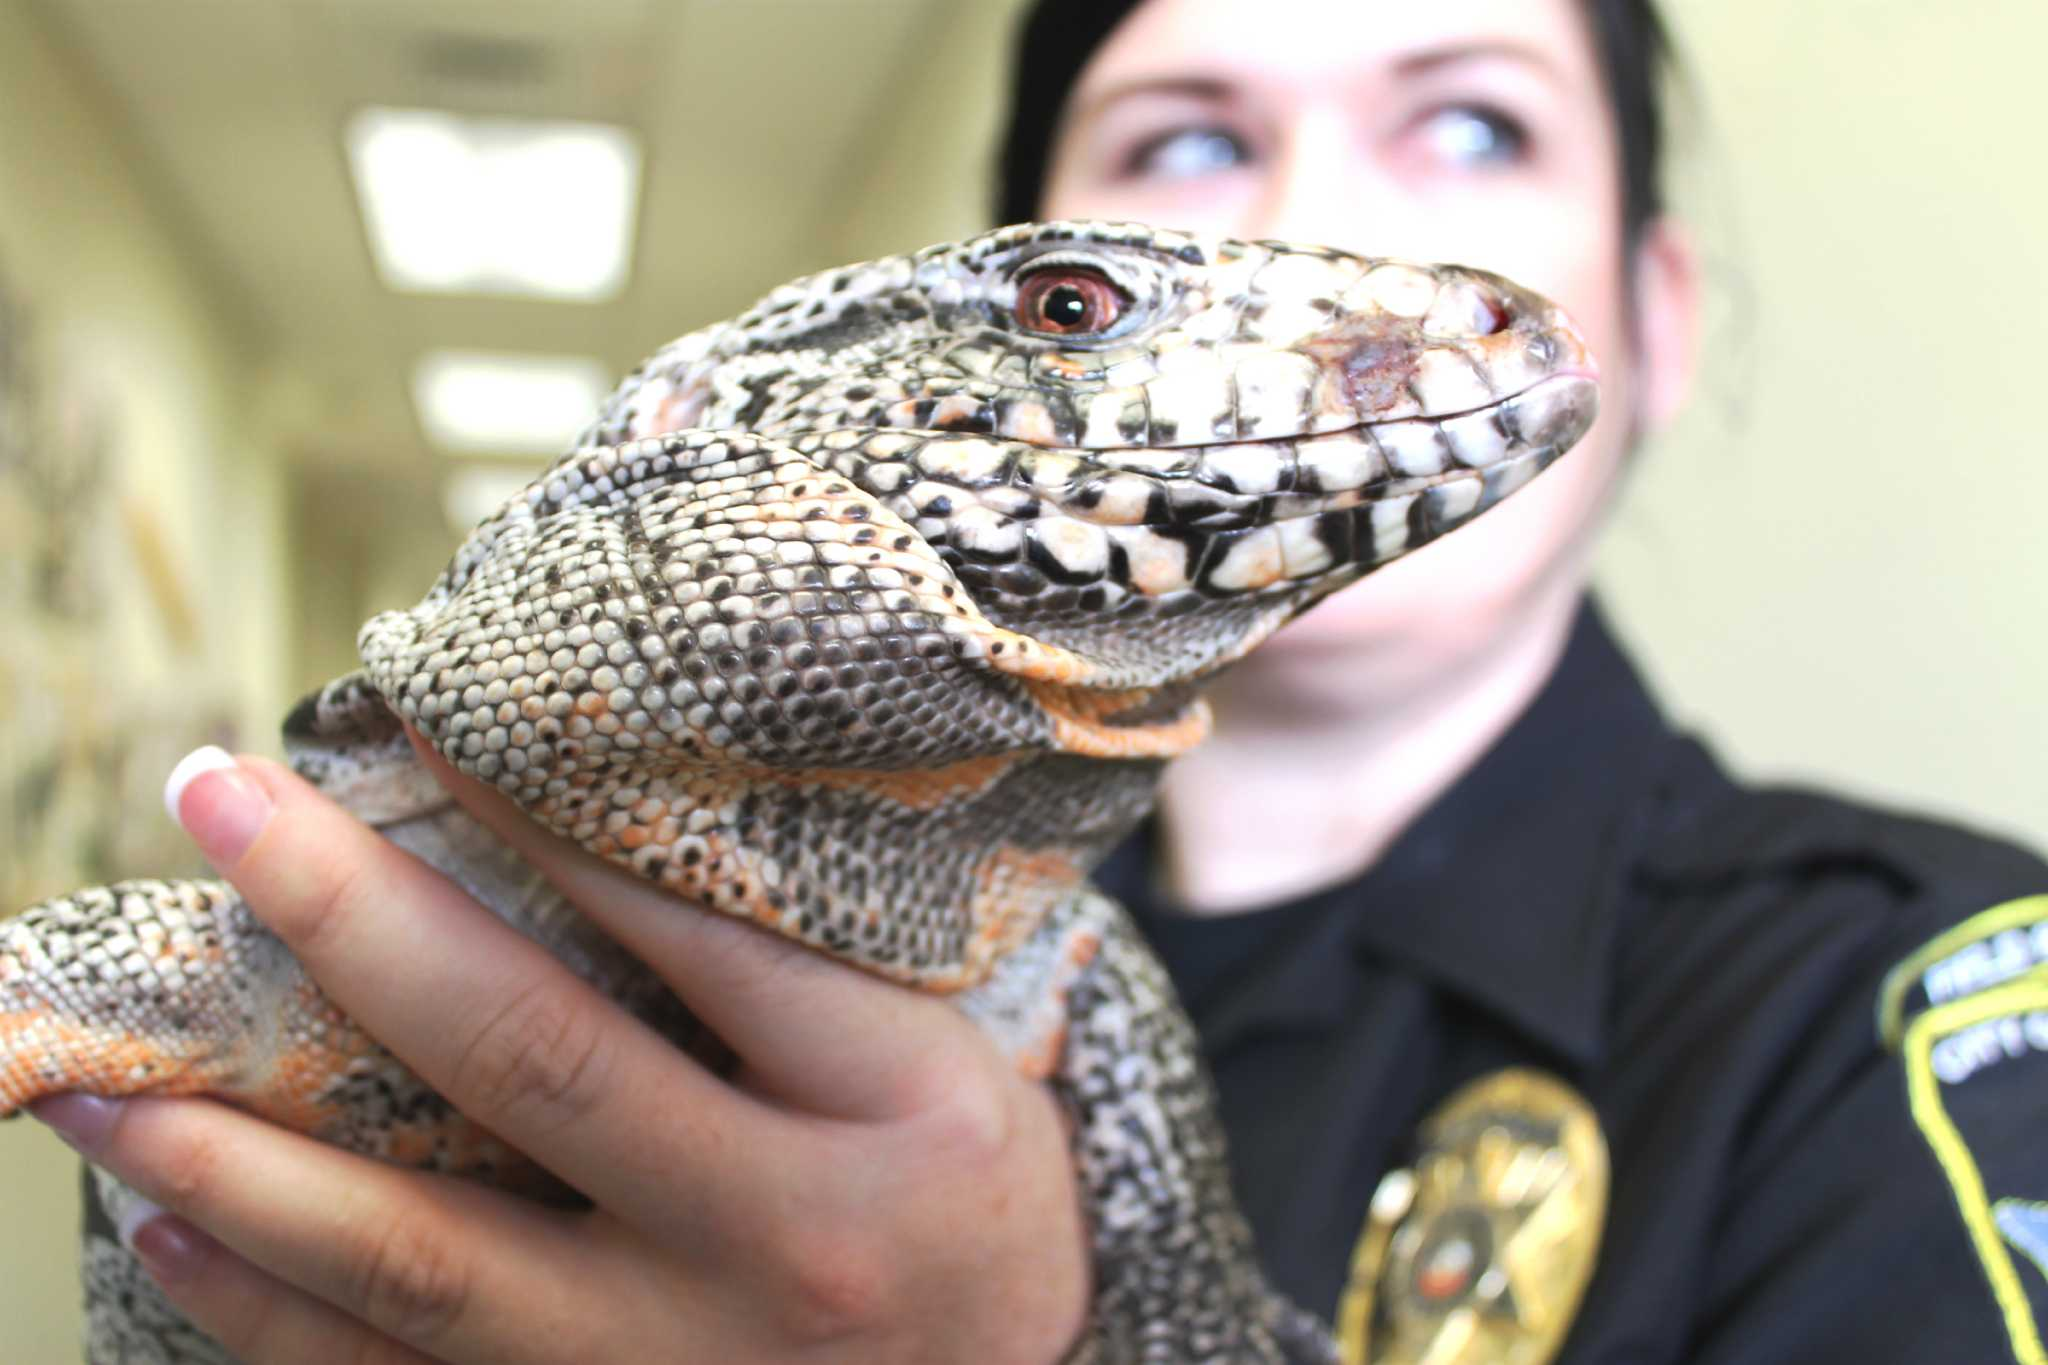 Residents Finds Stray South American Lizard In Northeast